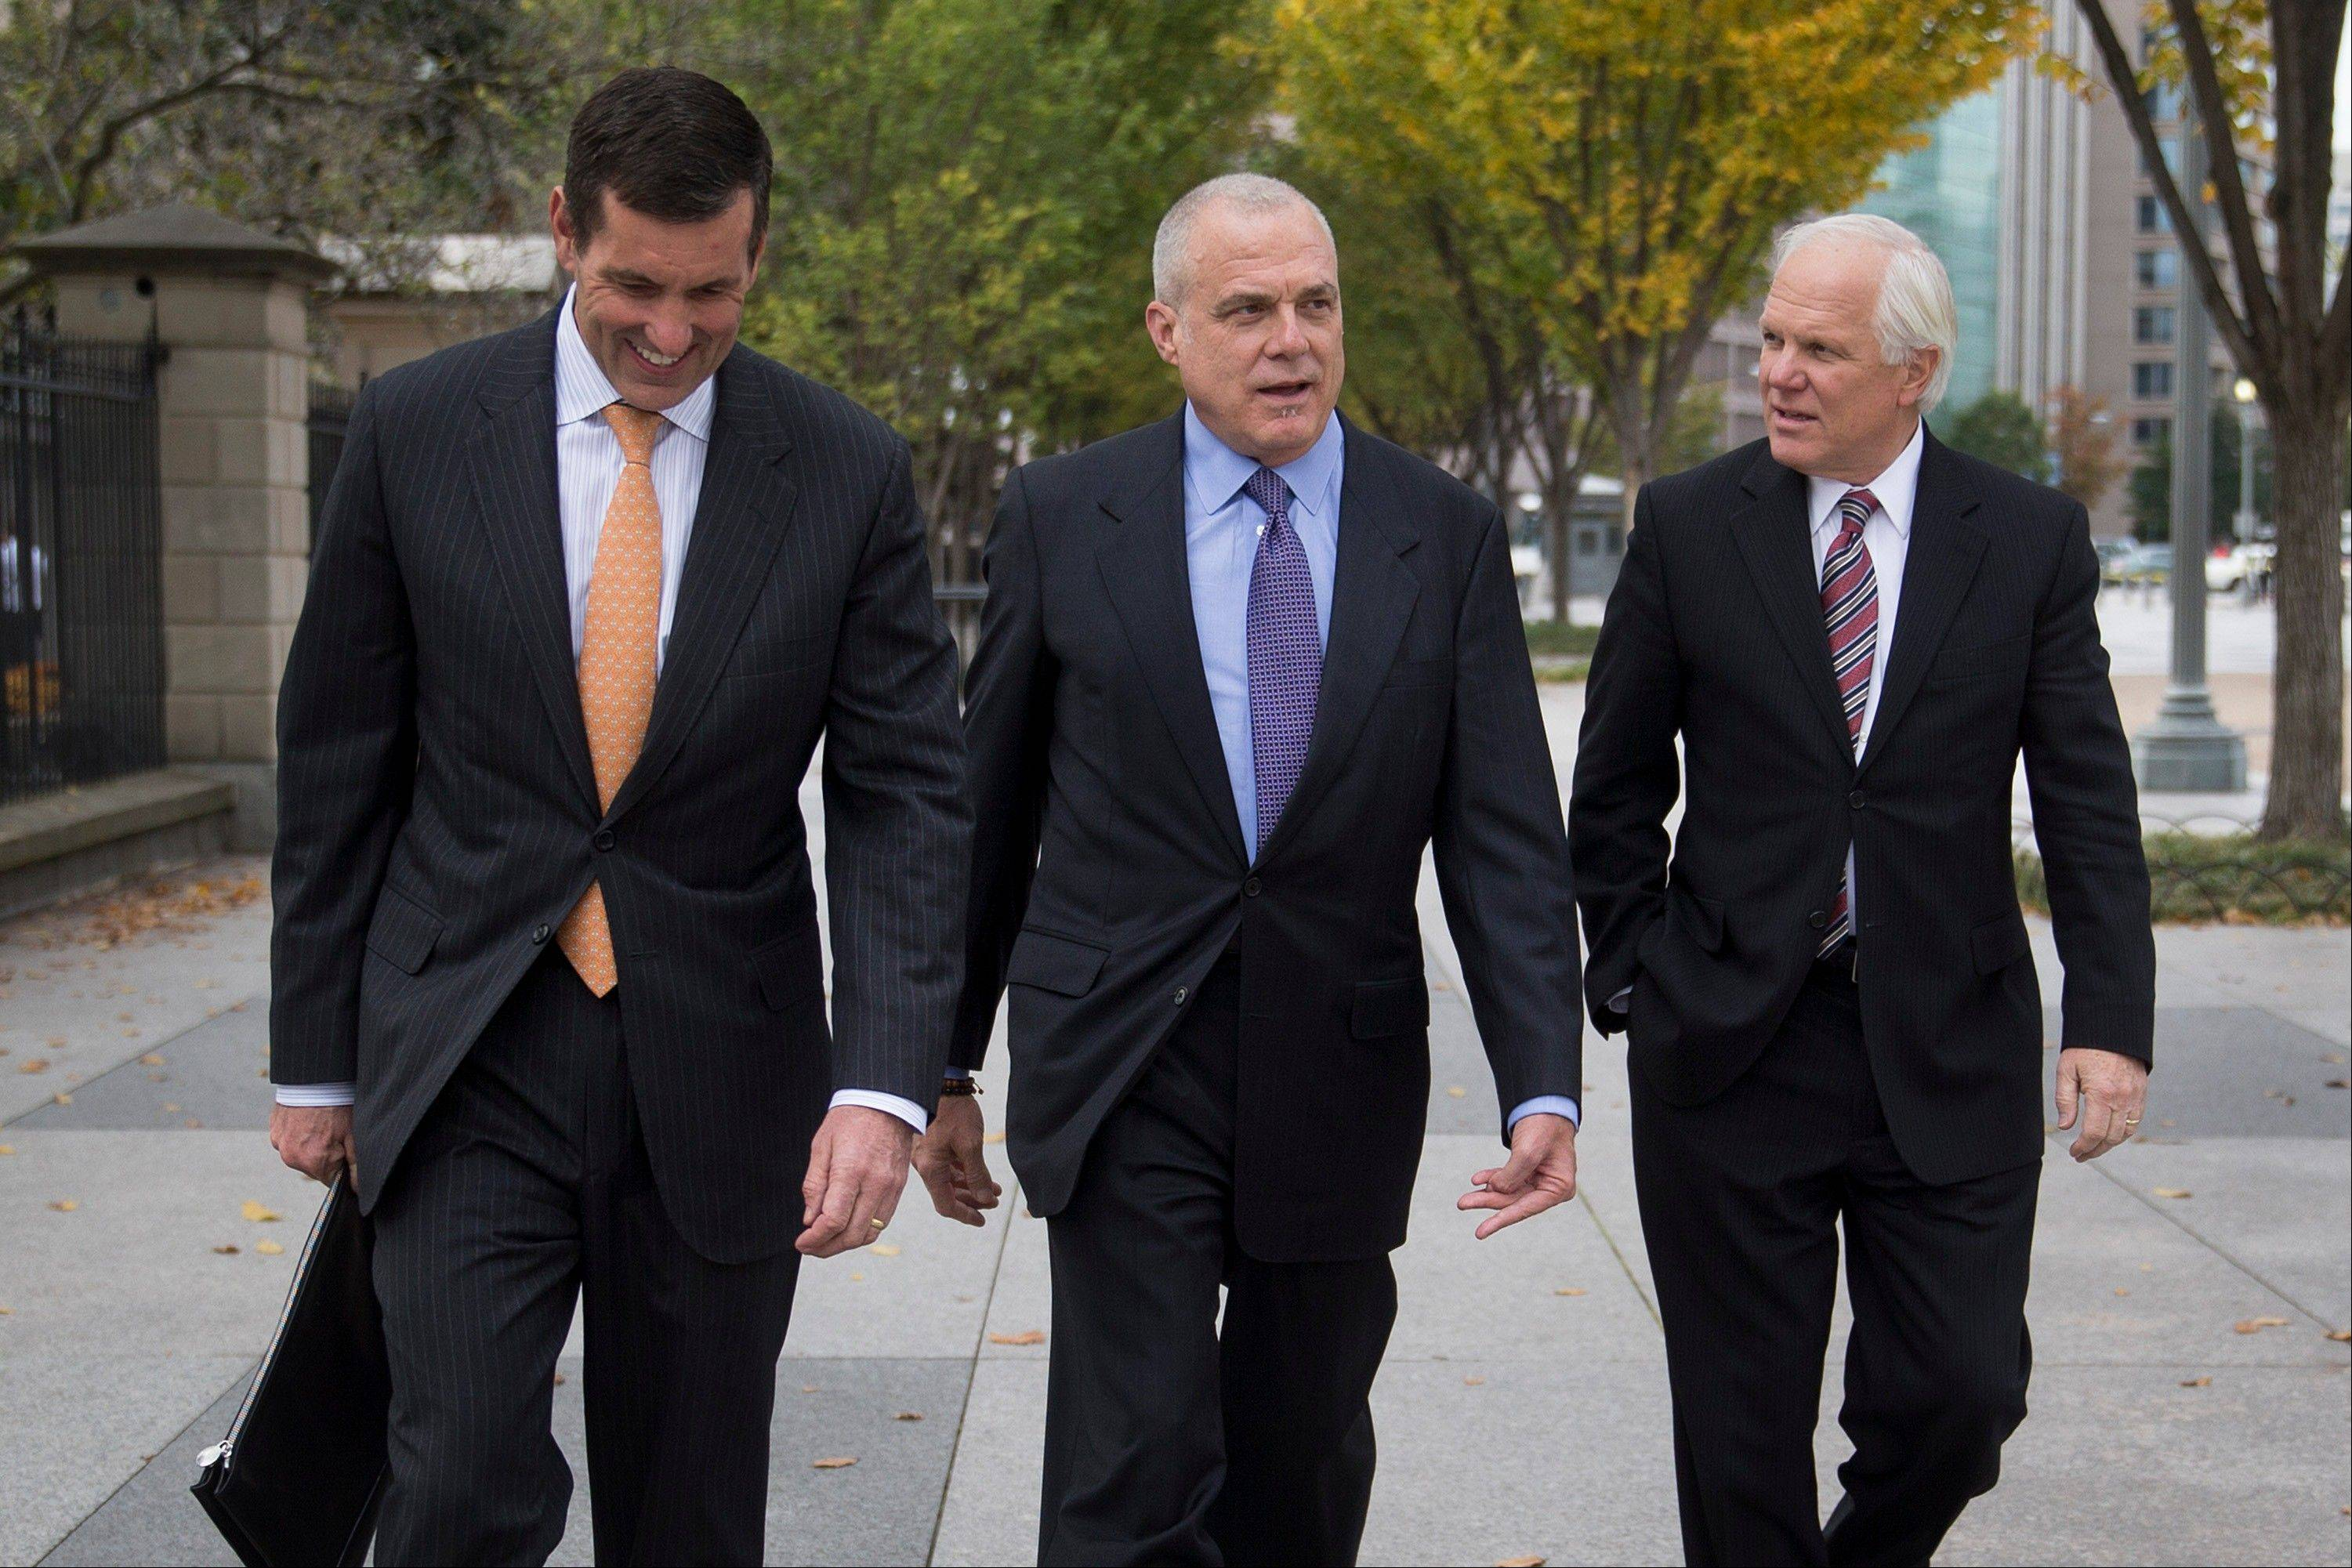 Bruce Broussard, chief executive officer of Humana Inc., from left, Mark Bertolini, chairman, president and chief executive officer of Aetna Inc., and Joseph �Joe� Swedish, chief executive officer of Wellpoint Inc., walk Wednesday toward the White House. Health insurance executives met with top White House officials over the troubled online enrollment program.